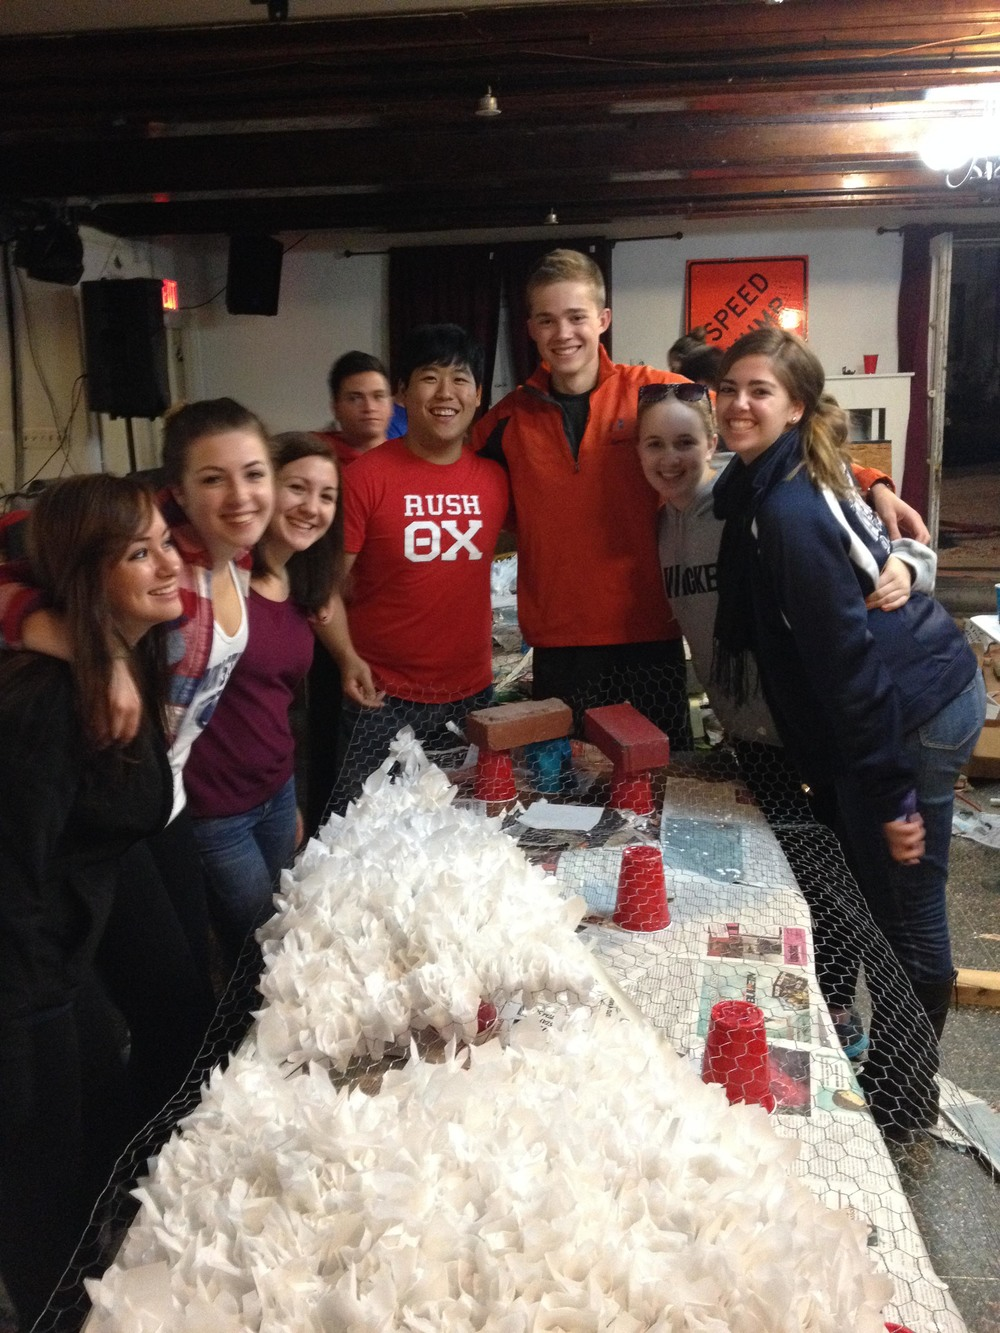 Homecoming 2013 preparations begin with float building - Danny Lim and TK - Oct. 8, 2013